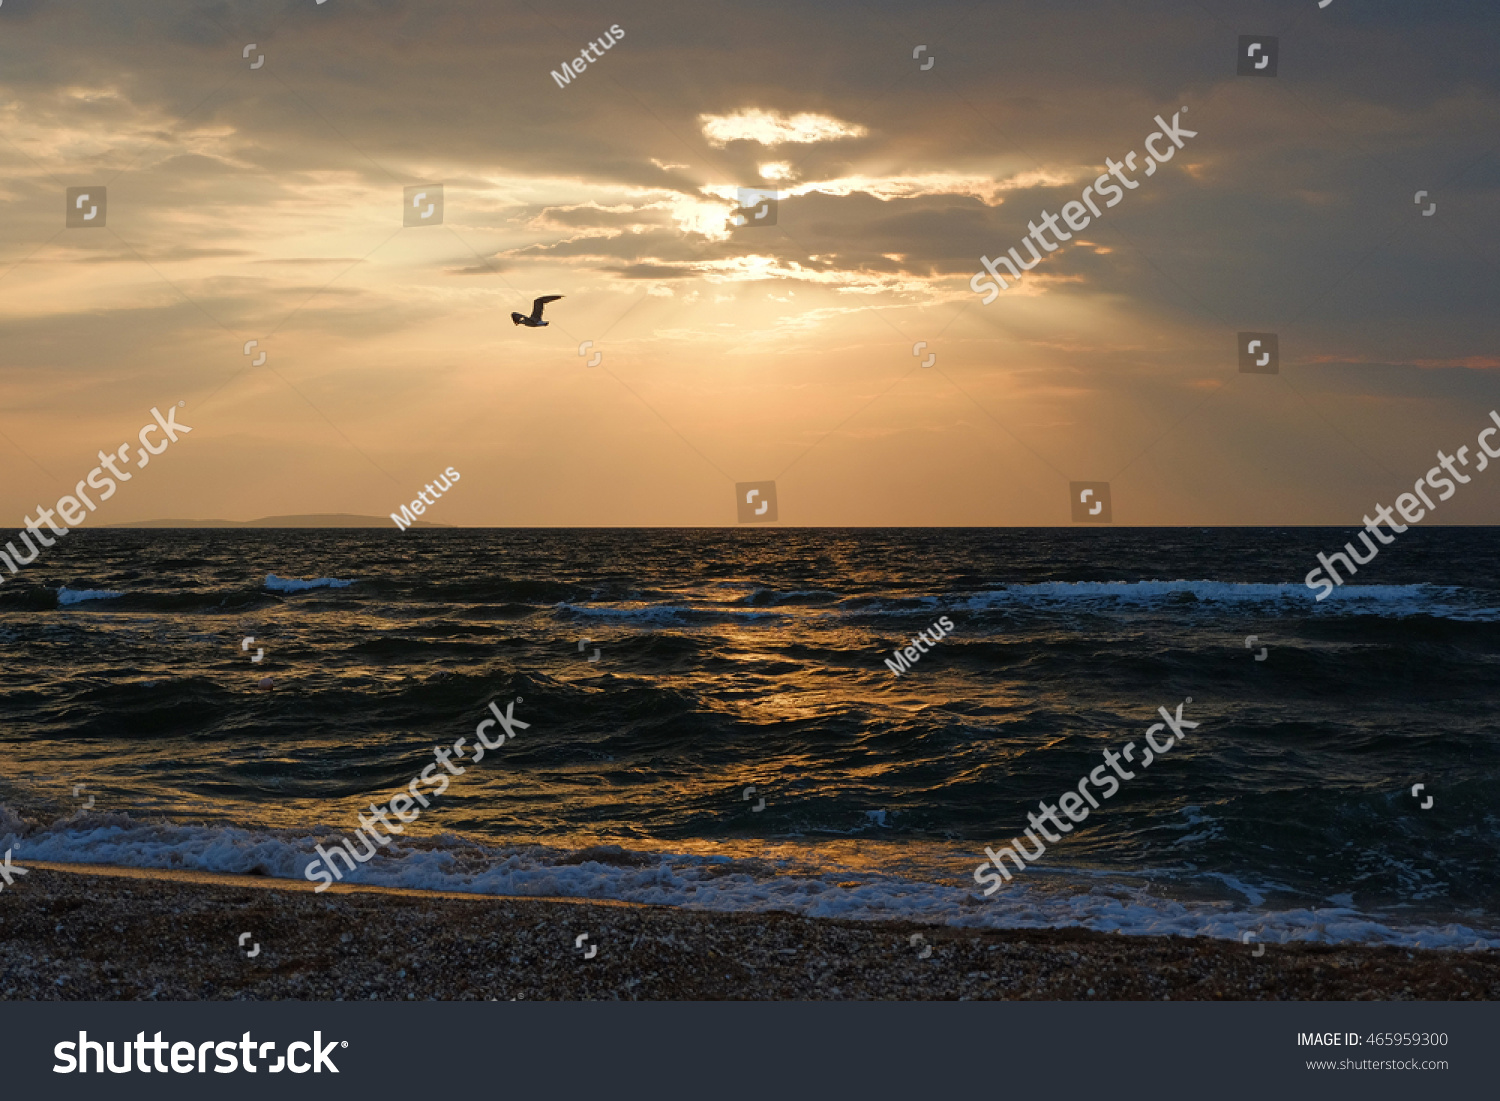 stock-photo-stormy-sea-weather-and-lonel